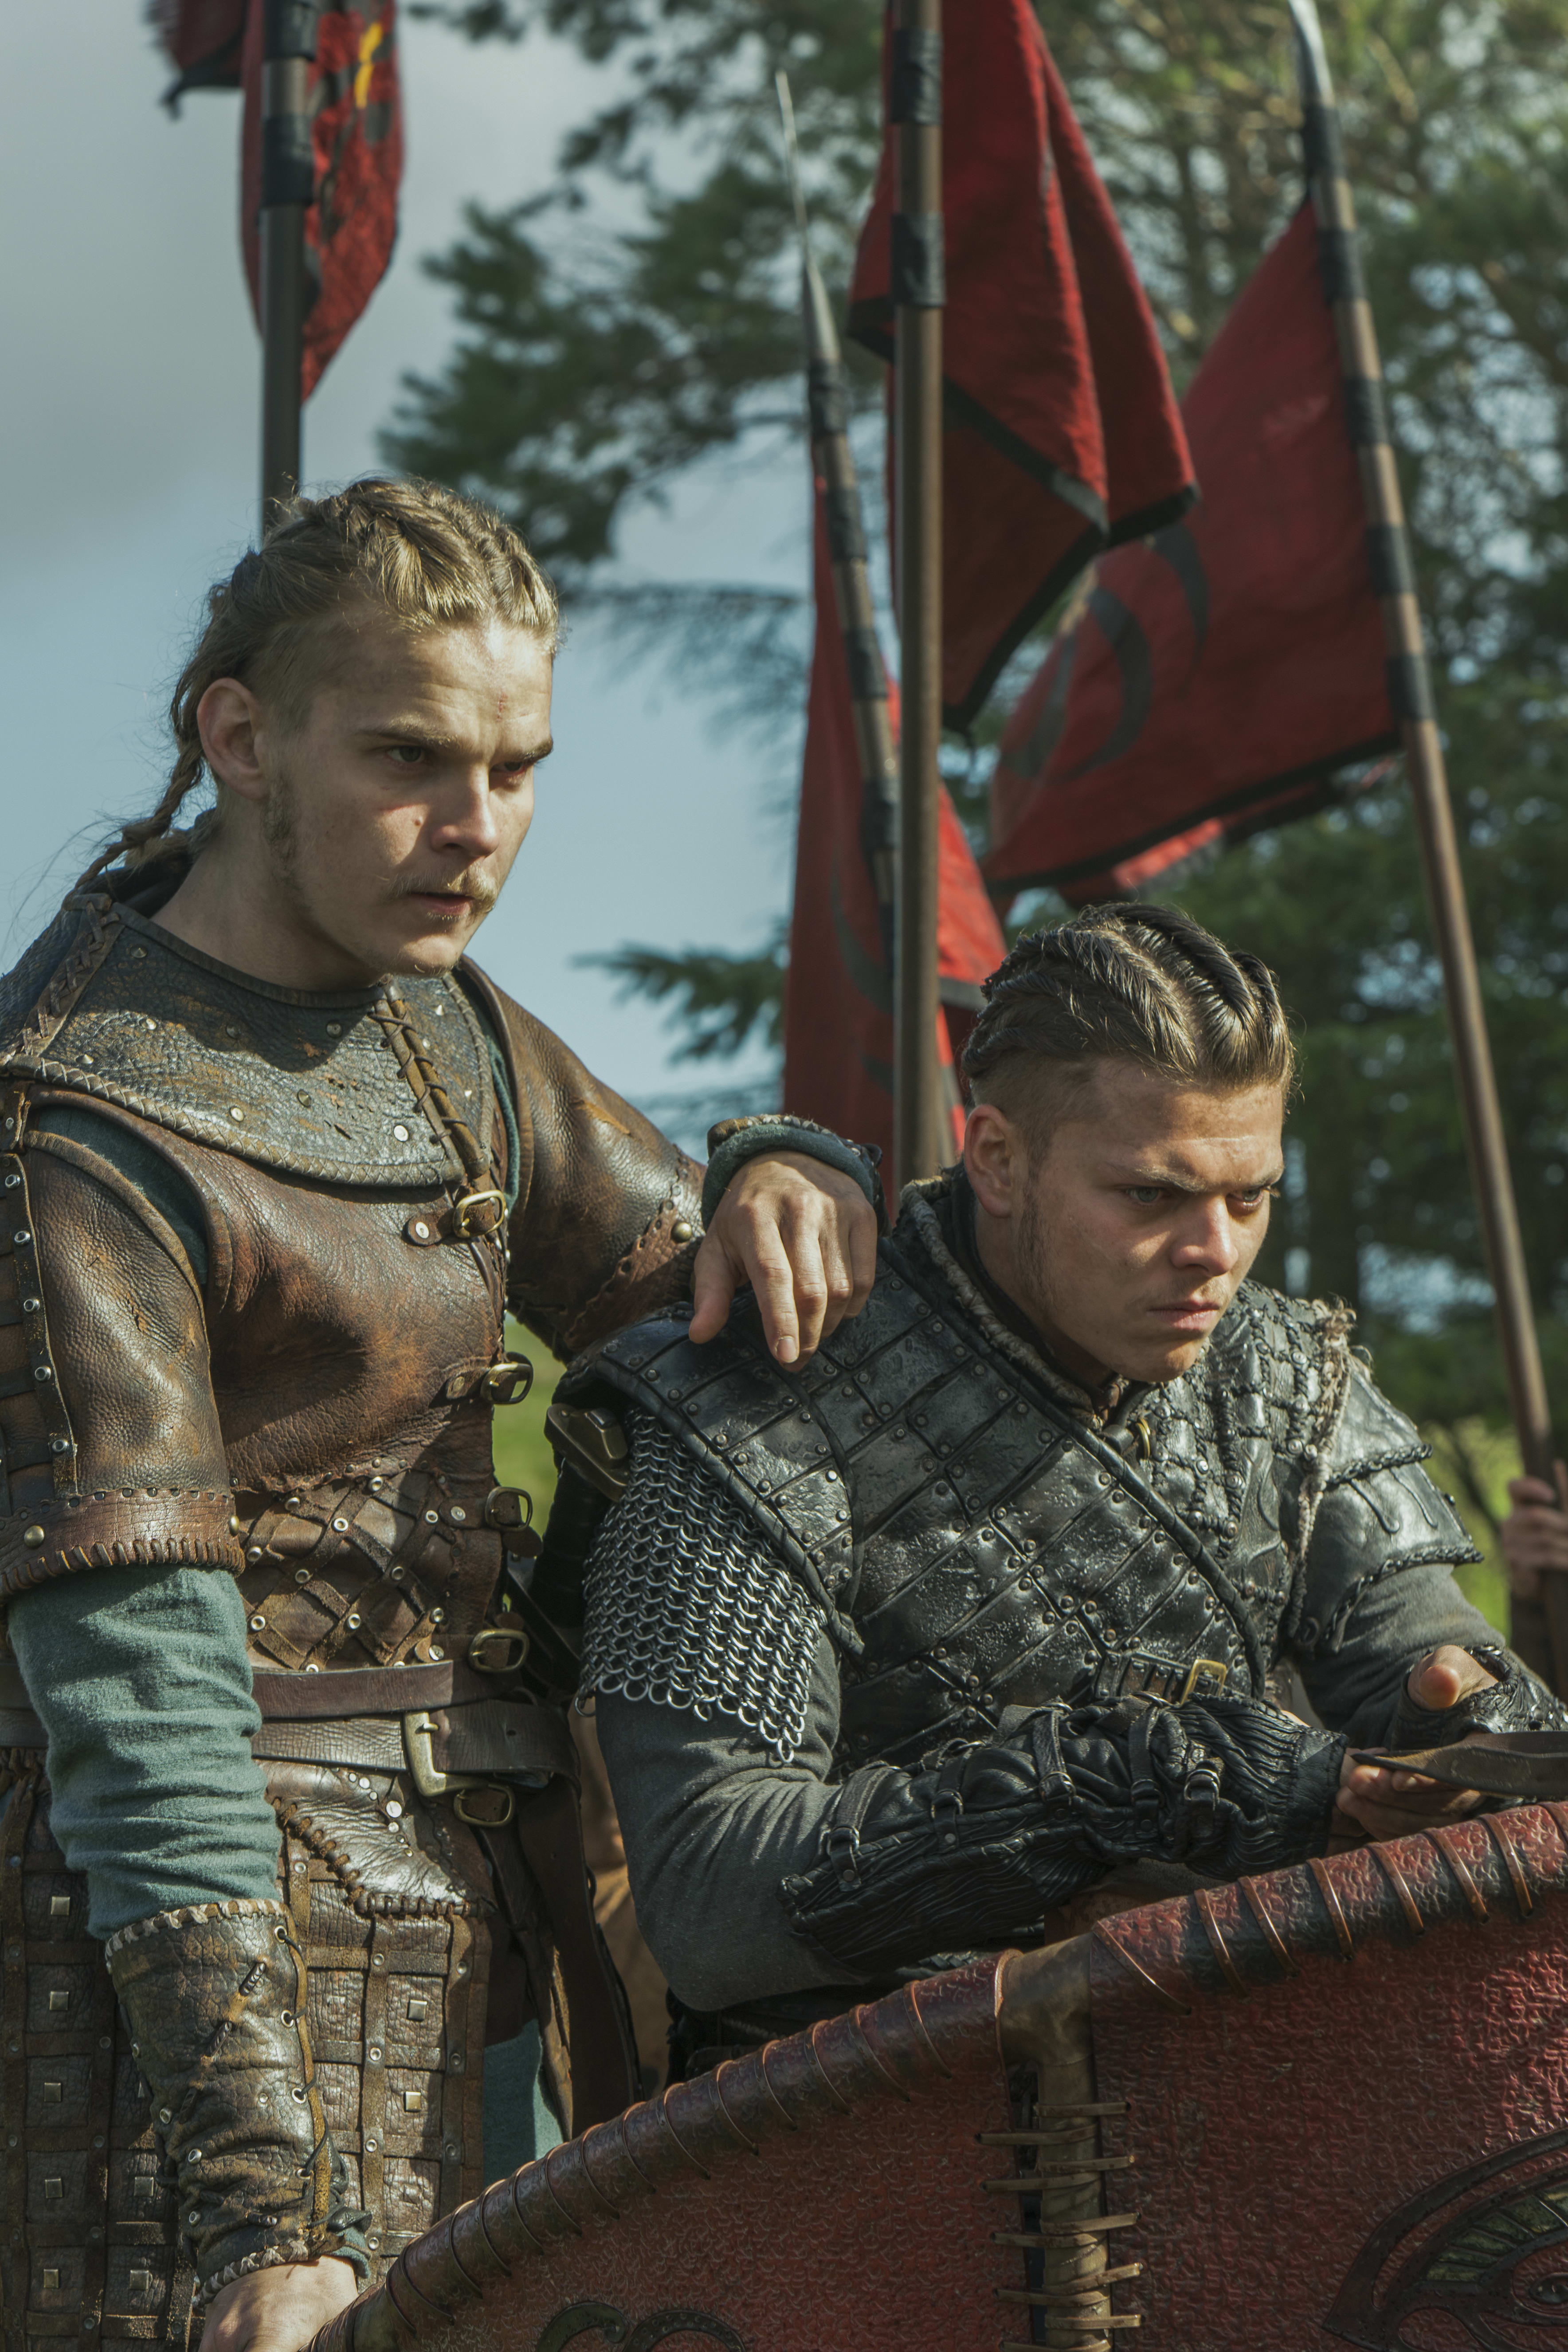 Vikings Season 5 Episode 8 Review: The Joke - TV Fanatic